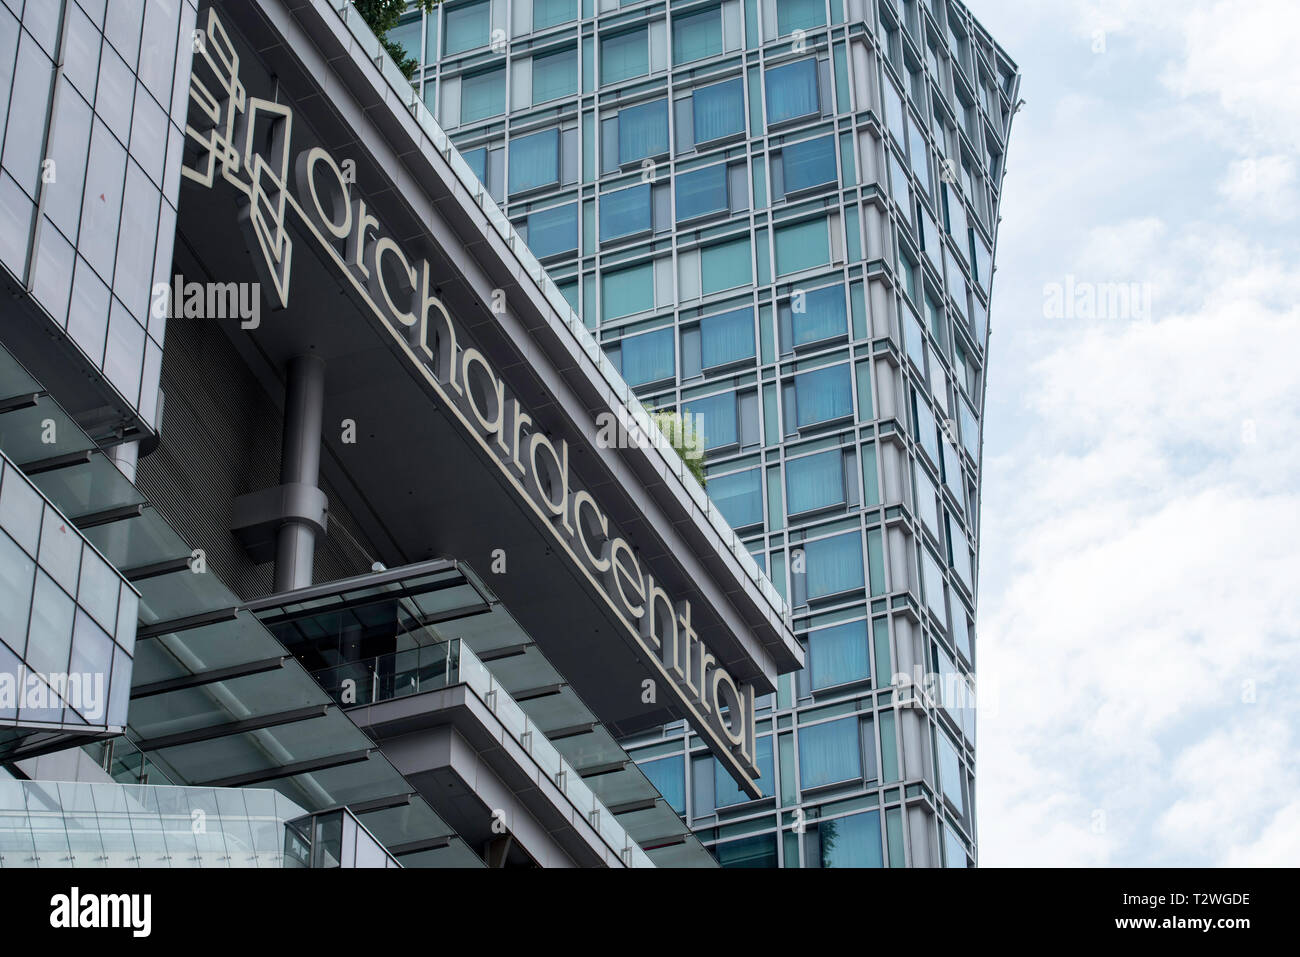 Multi Story Mall High Resolution Stock Photography and Images - Alamy